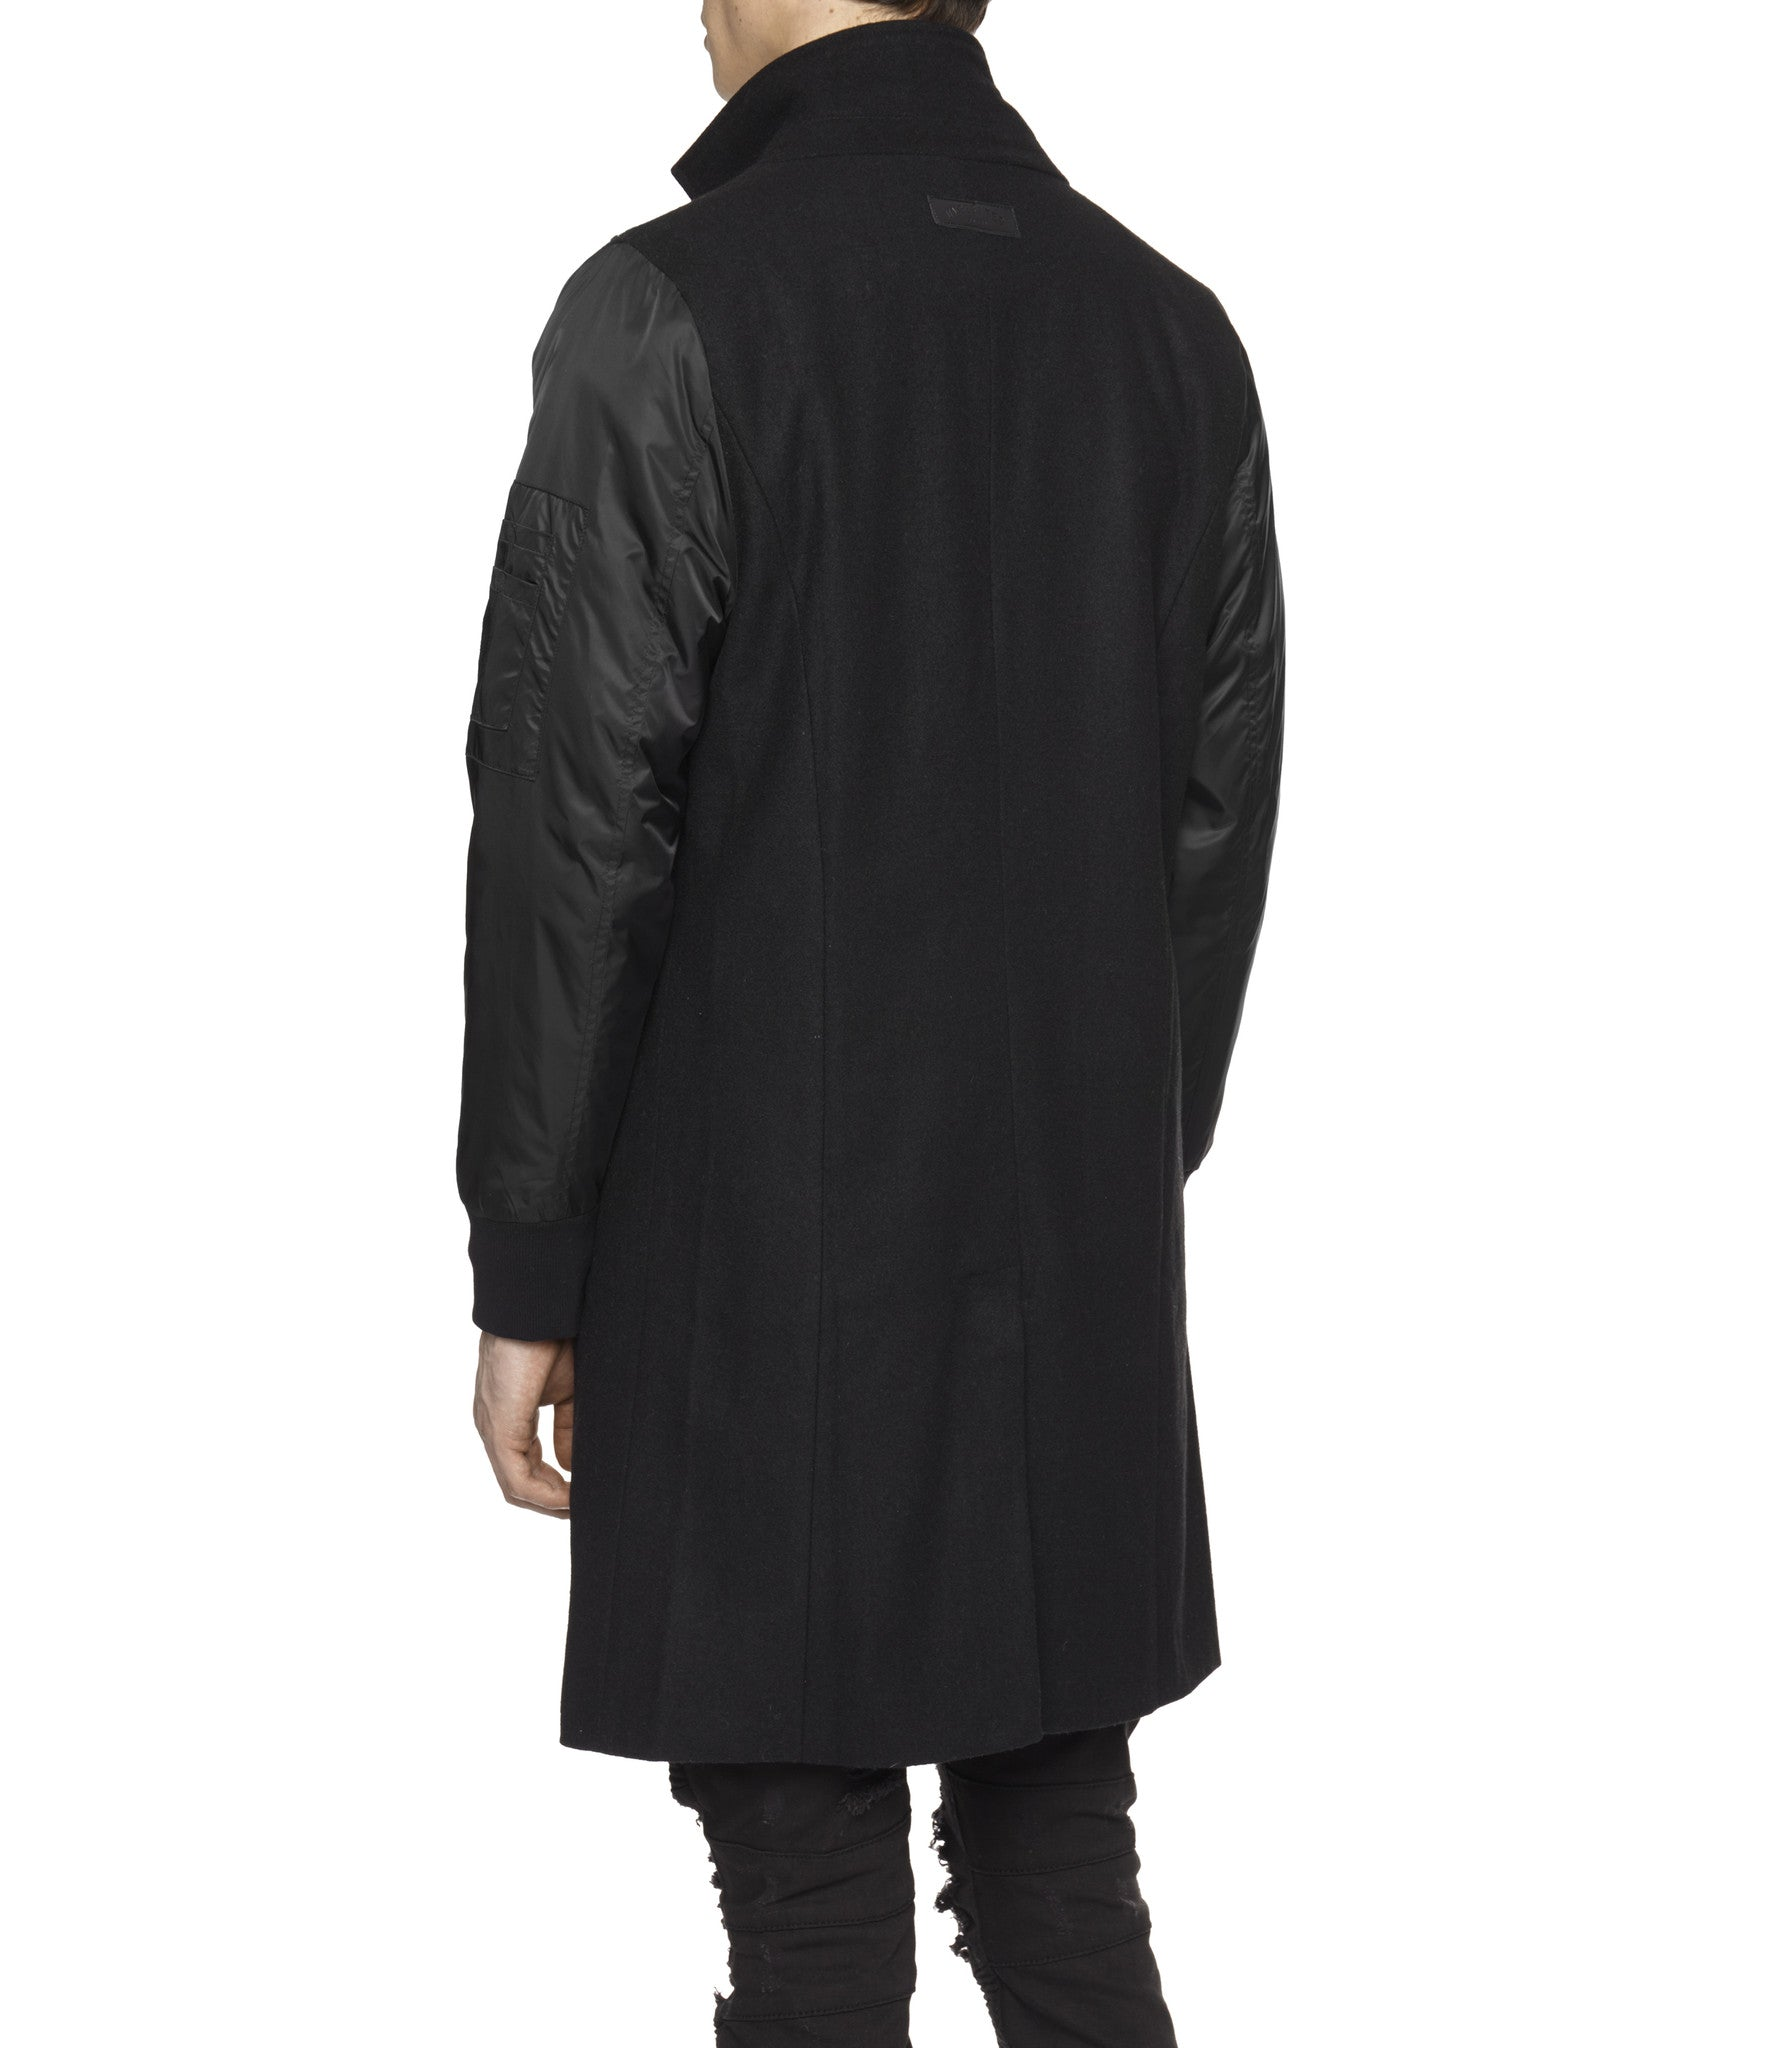 JK215 Hybrid Overcoat - Black - underated london - underatedco - 5